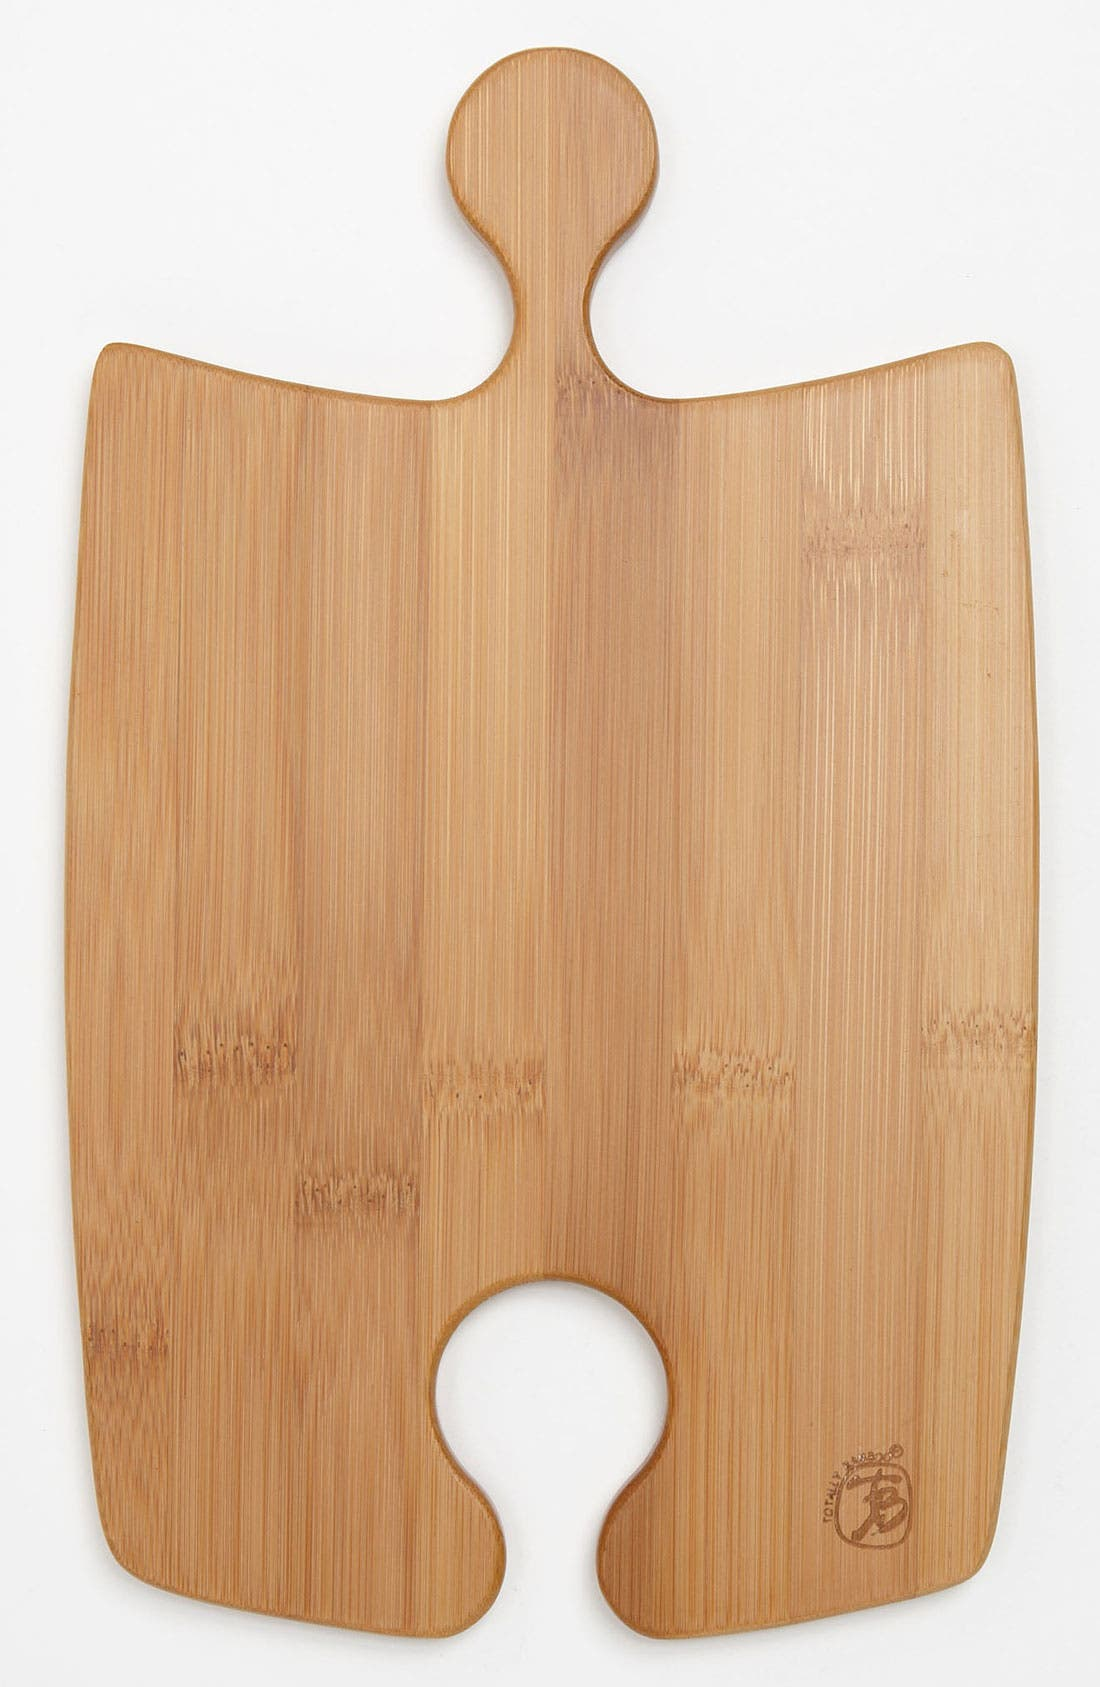 Alternate Image 1 Selected - Totally Bamboo 'Puzzle' Cheeseboard